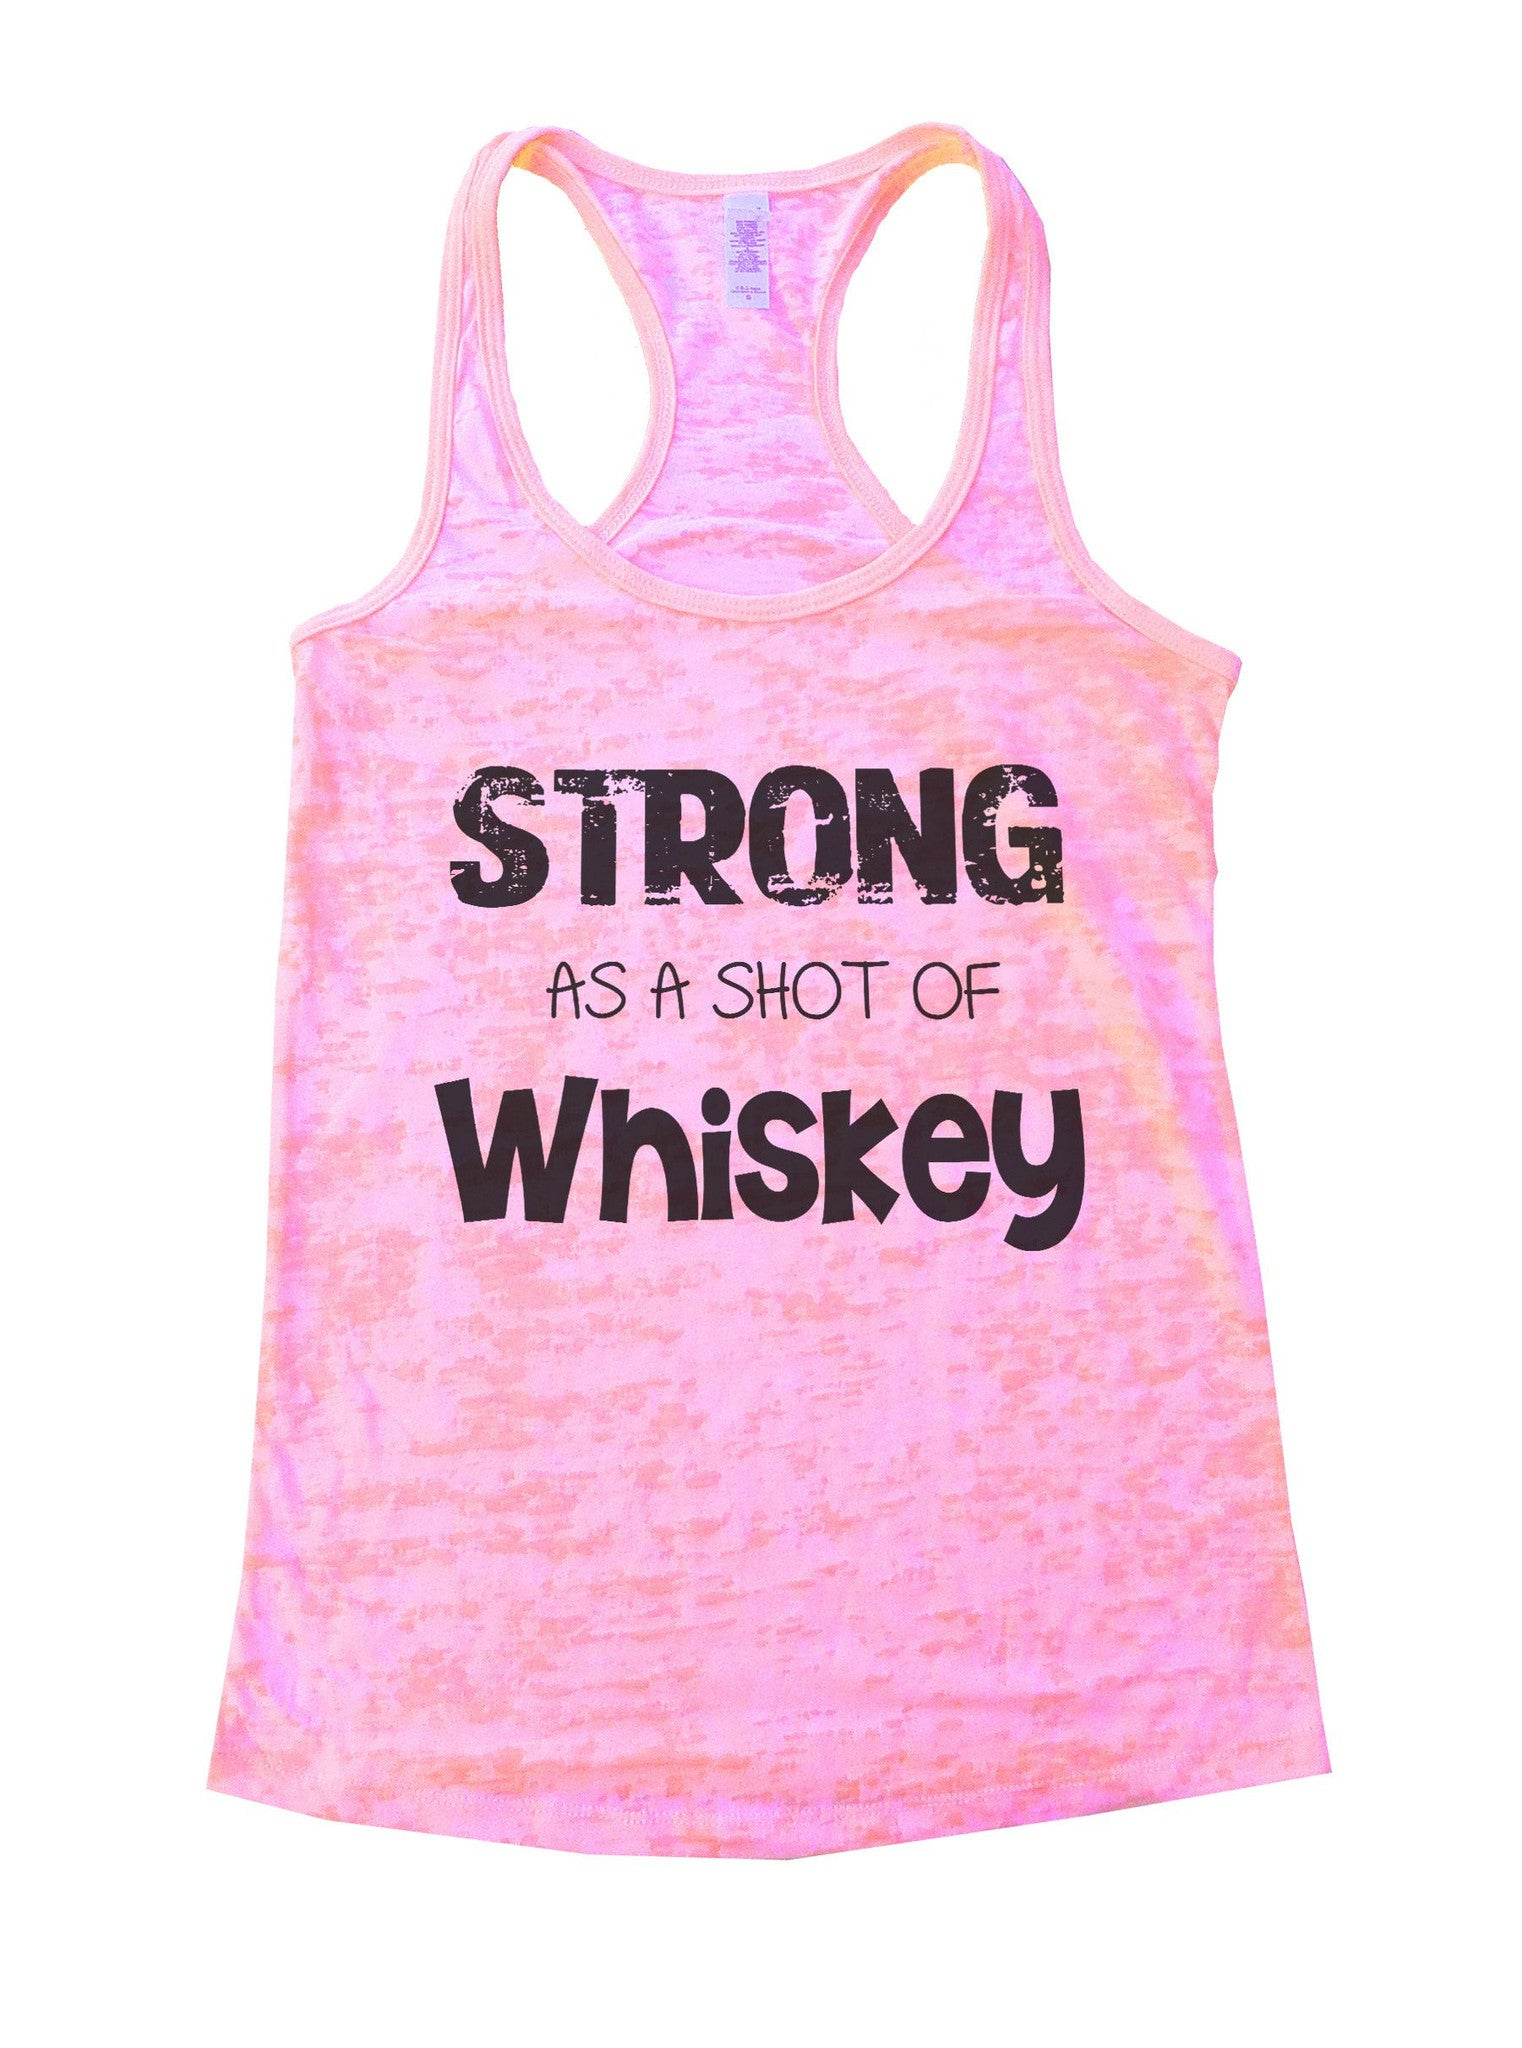 Strong As A Shot Of Whiskey Burnout Tank Top By BurnoutTankTops.com - 717 - Funny Shirts Tank Tops Burnouts and Triblends  - 2